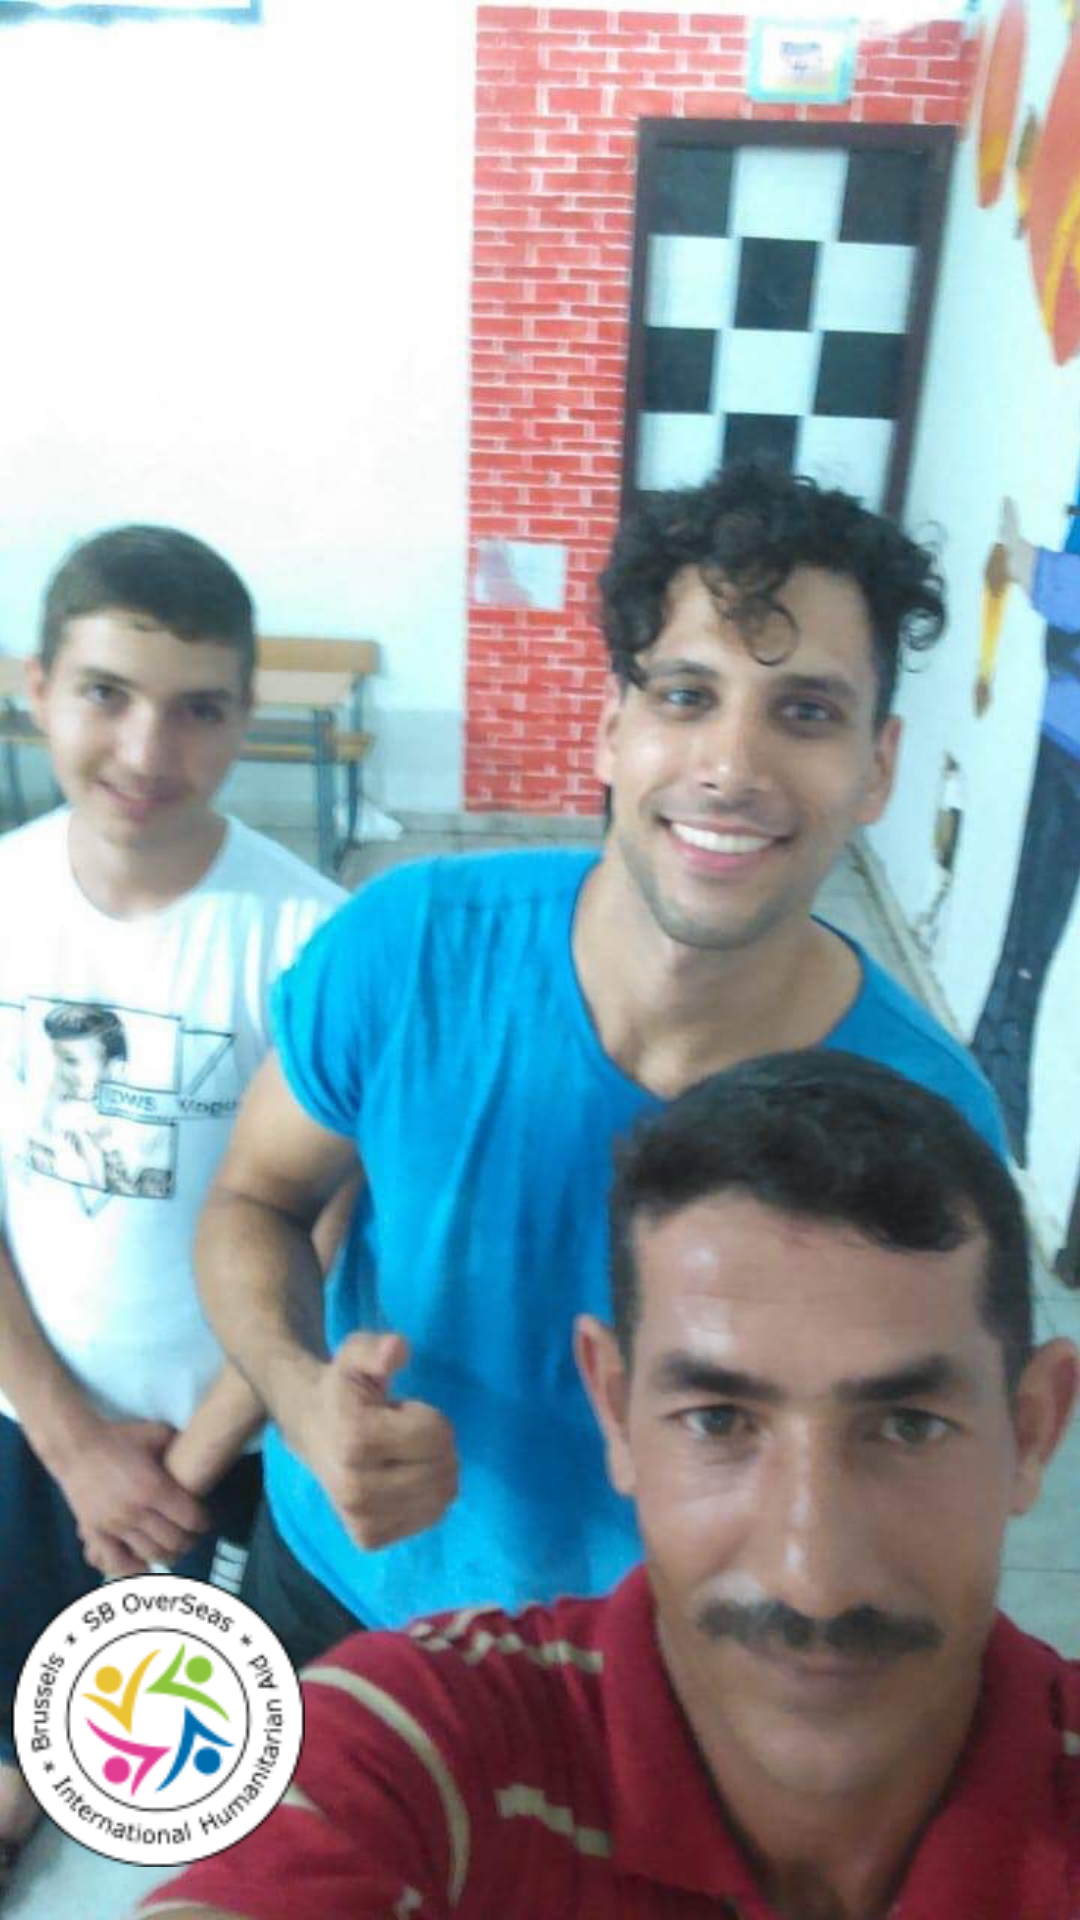 Volunteers bring fitness to the men of Saida